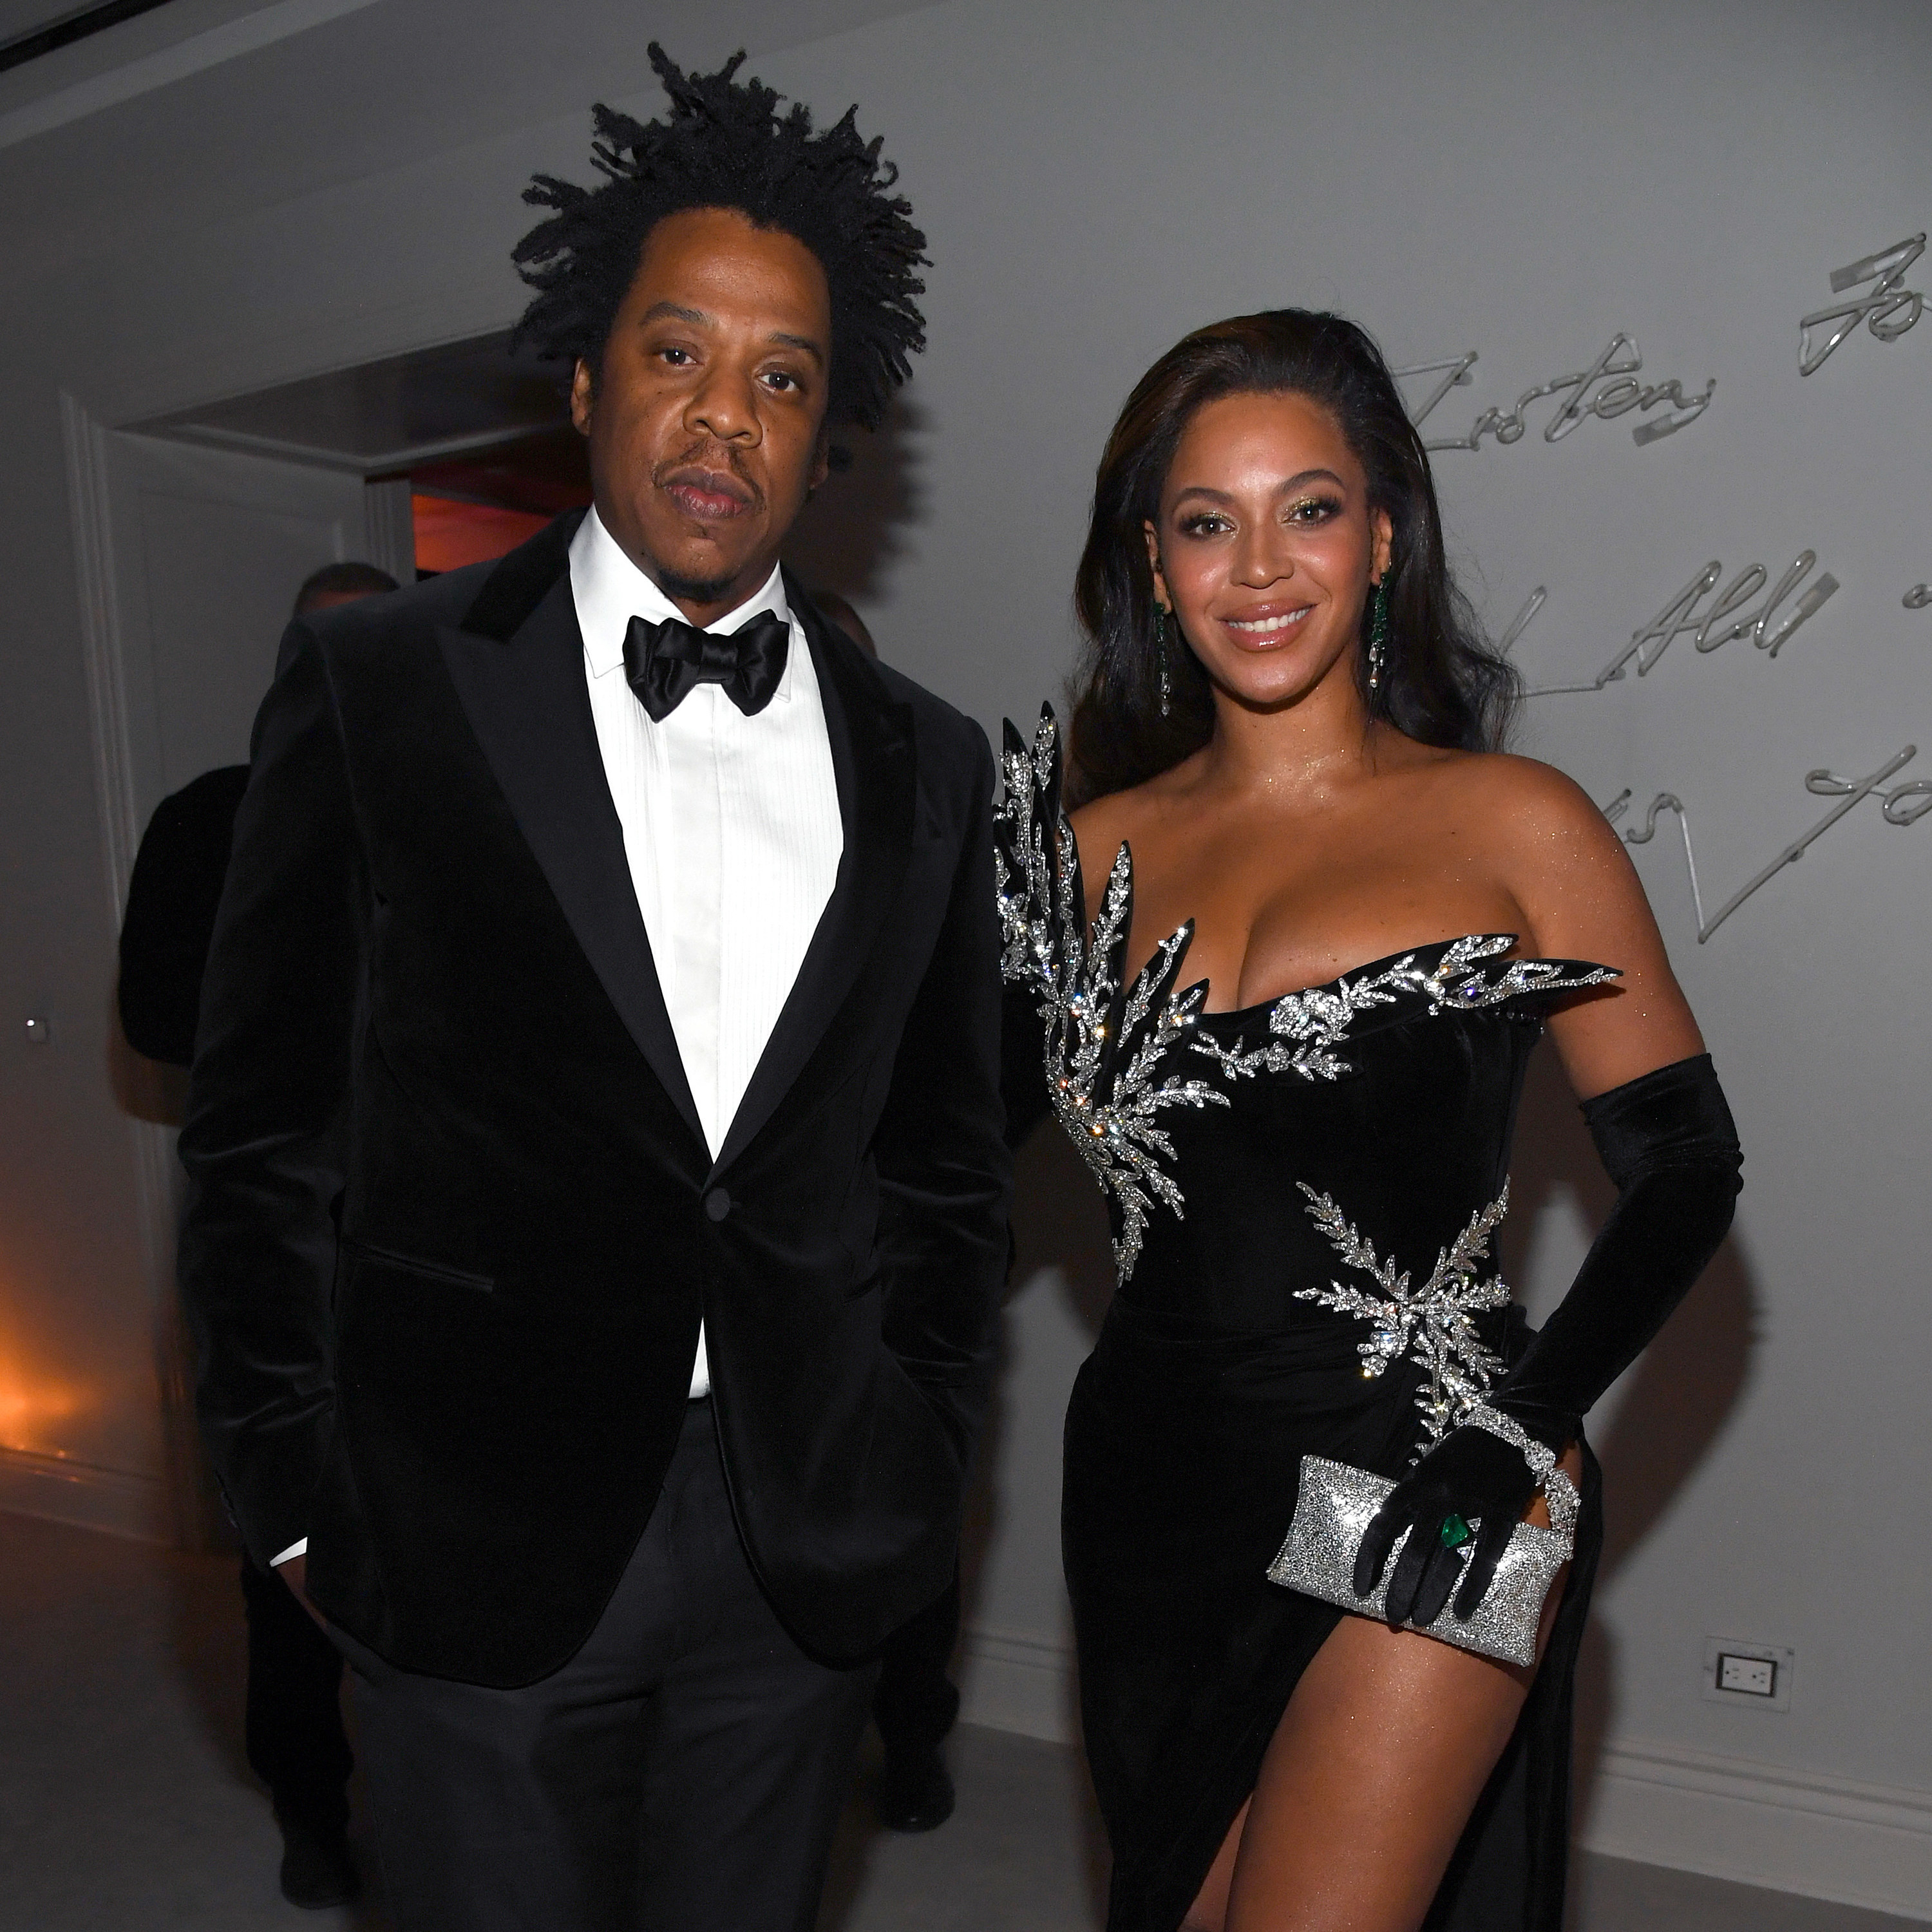 Jay-Z and Beyoncé stand next to each other at a party